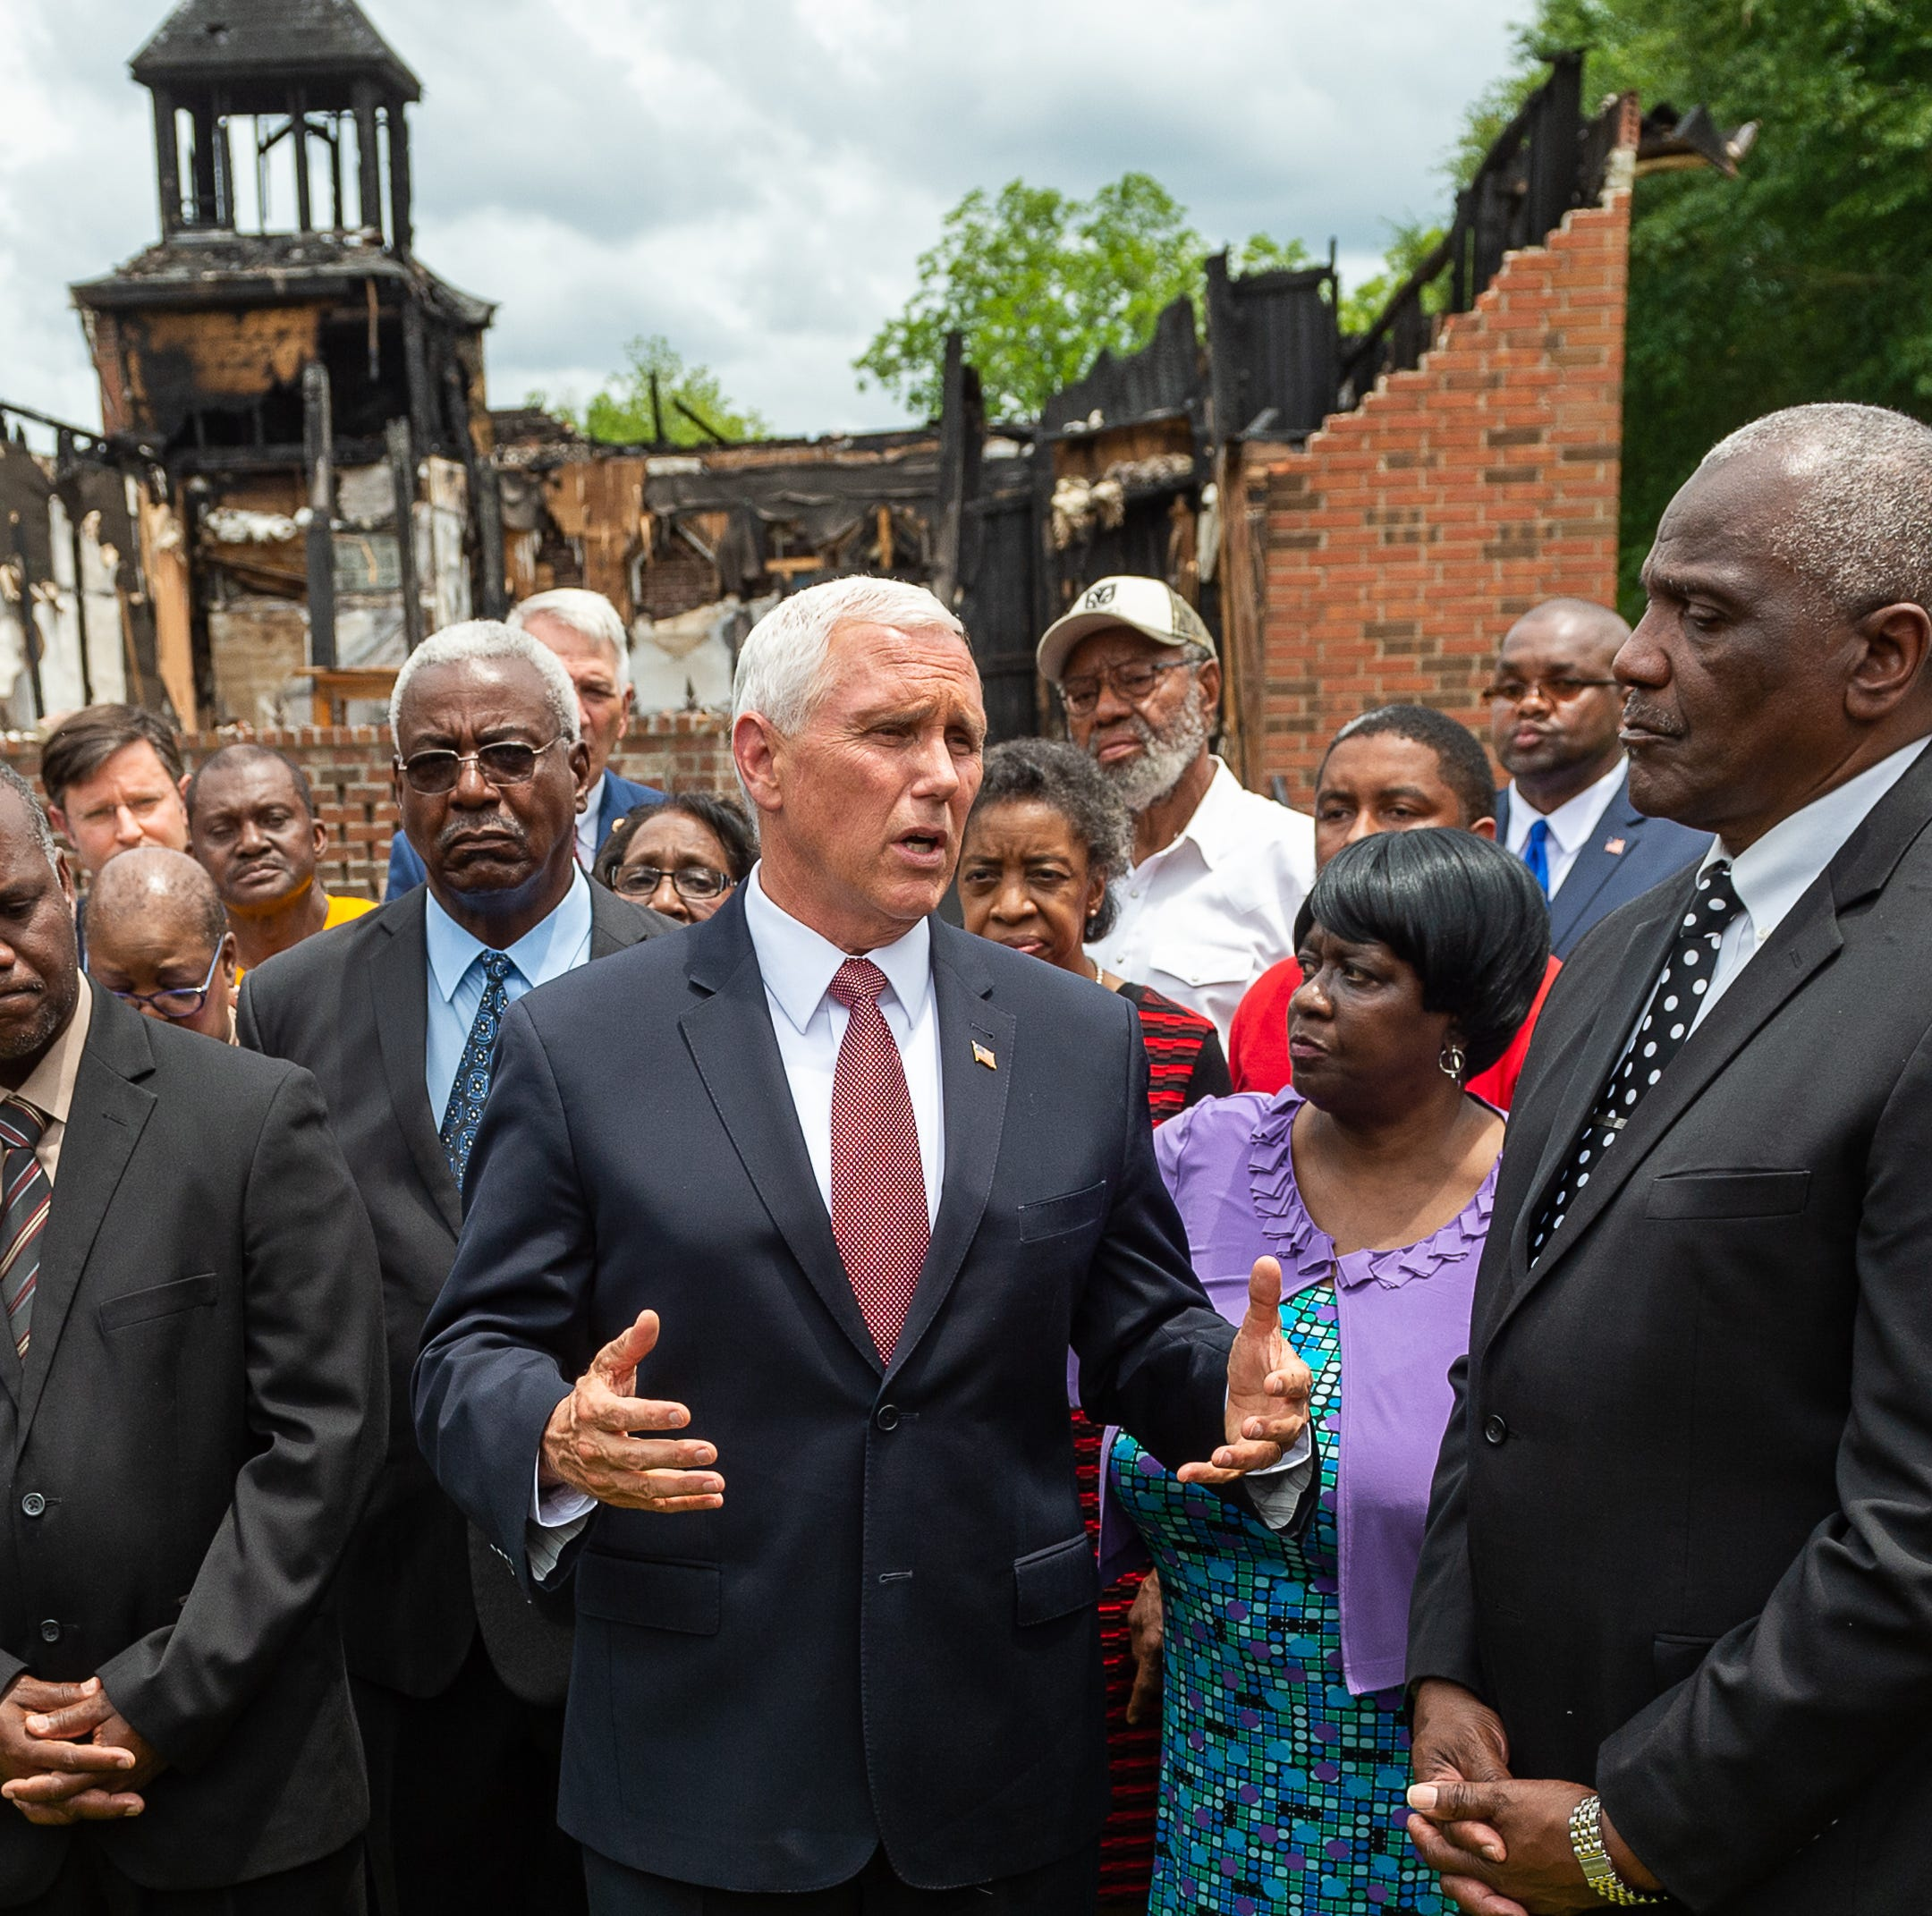 Mike Pence's visit to Opelousas: Louisiana churches 'overcame evil with good'